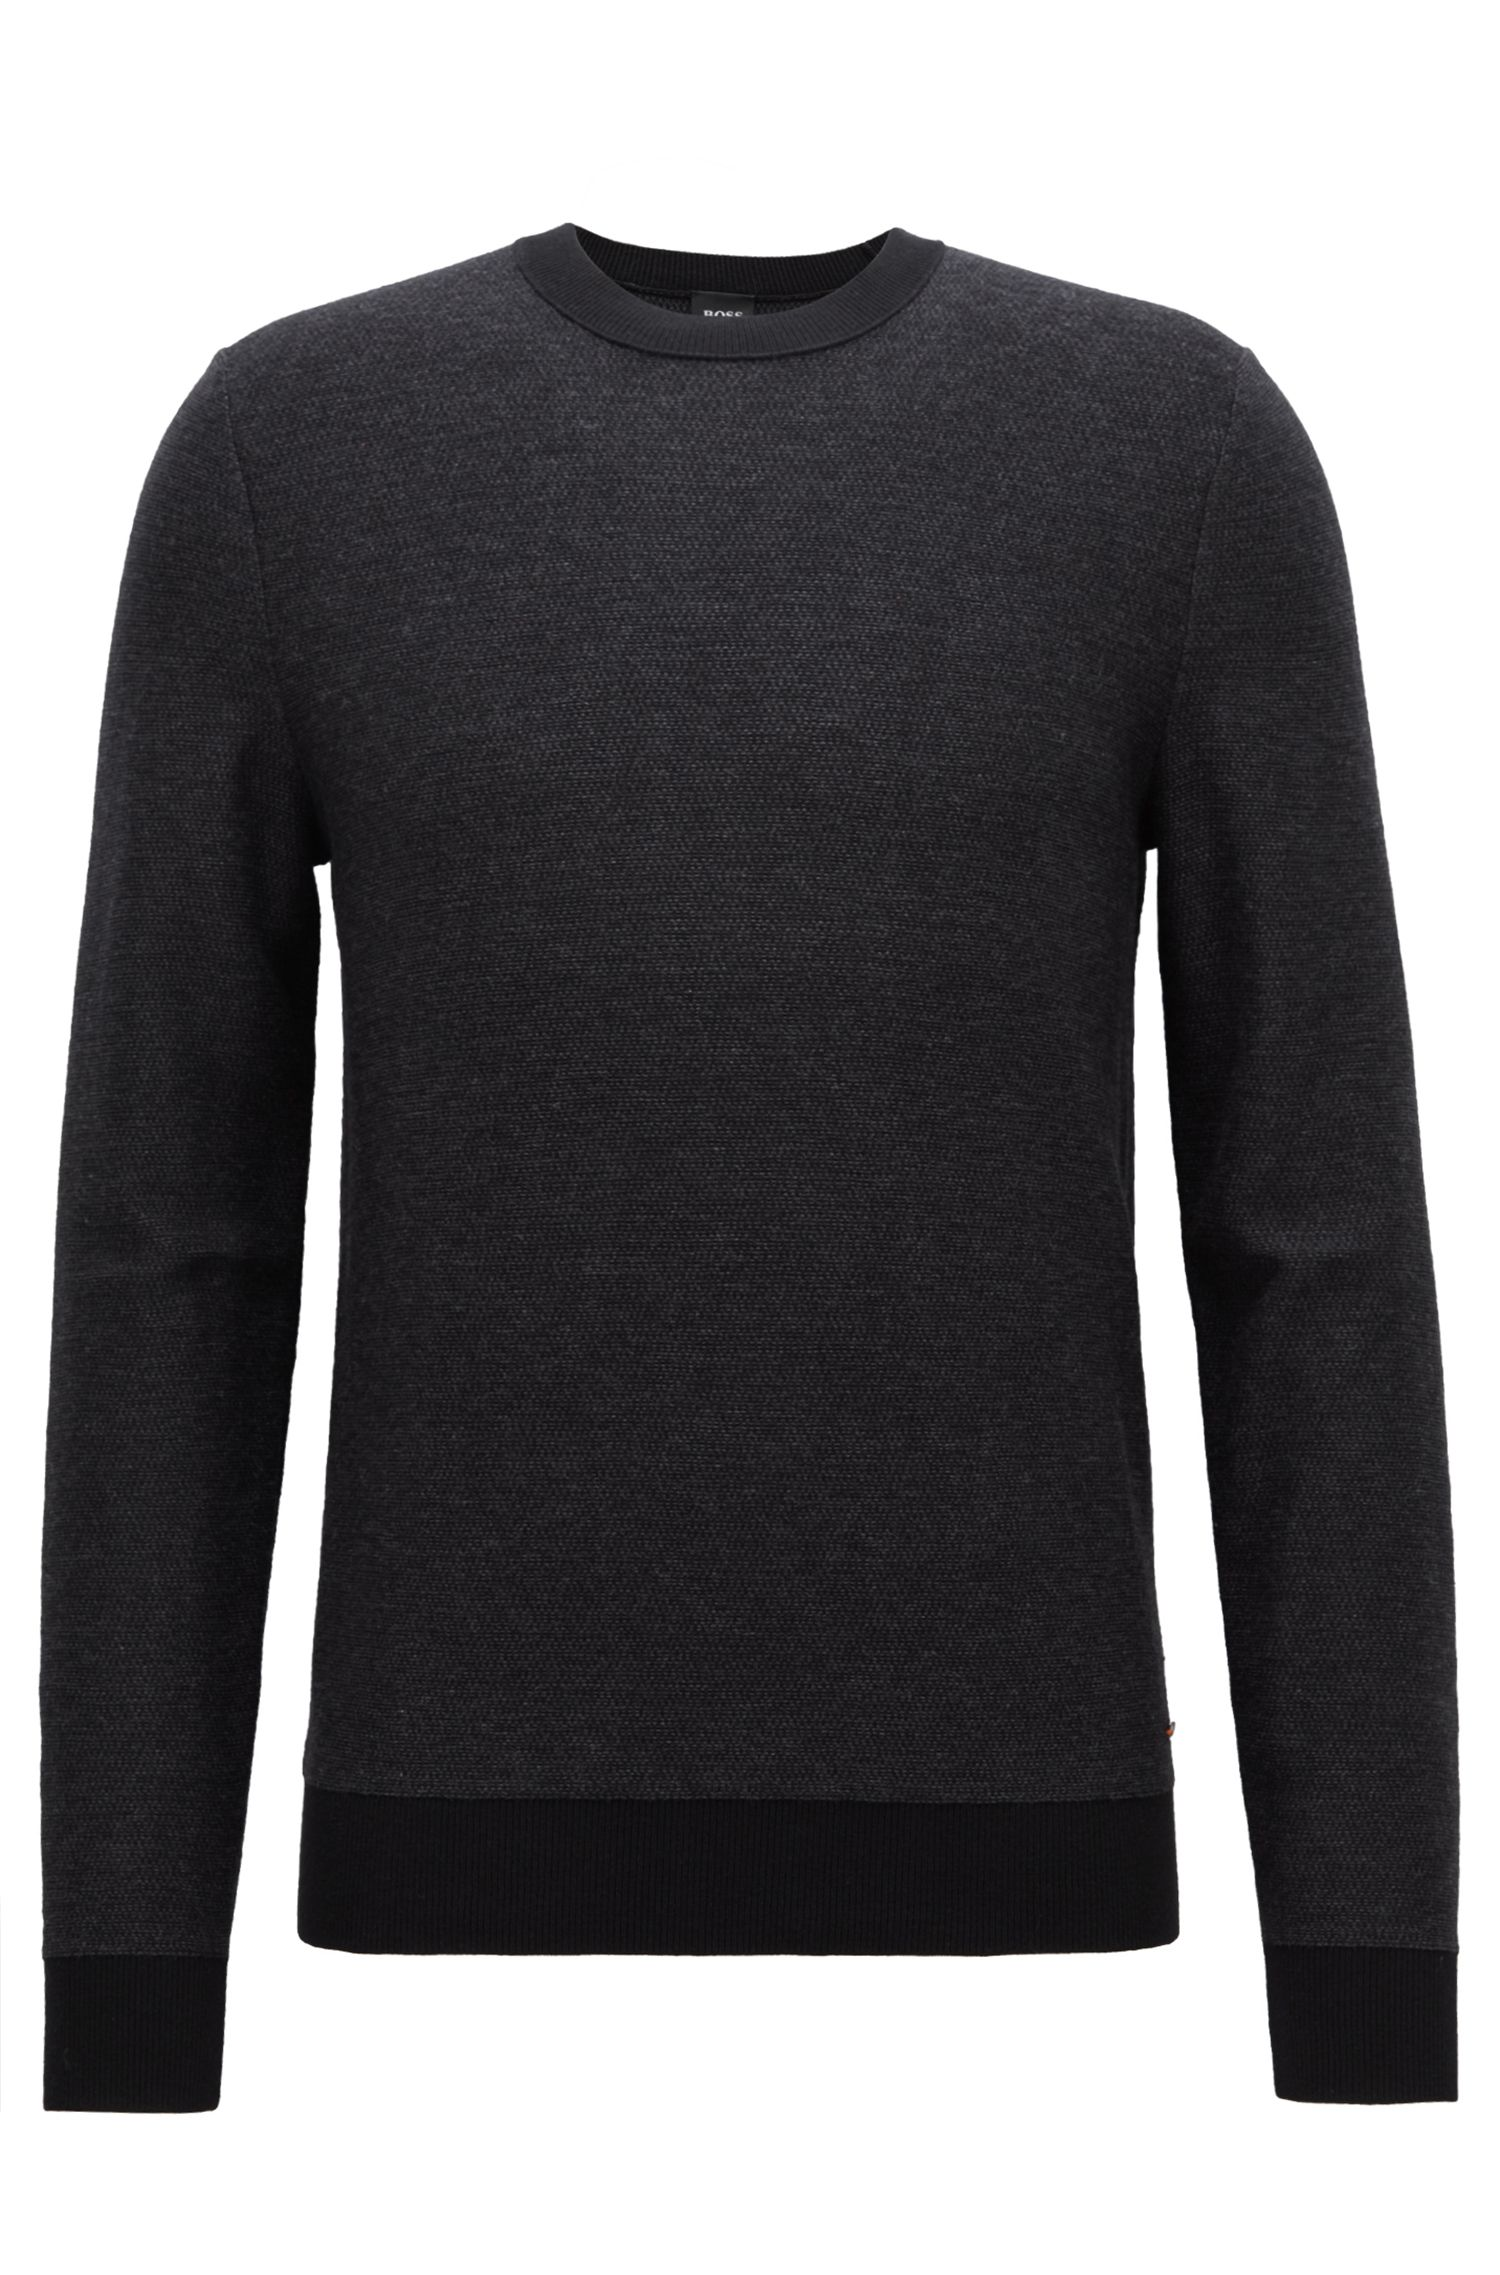 Knitted jacquard sweater with two-colour micro pattern, Black